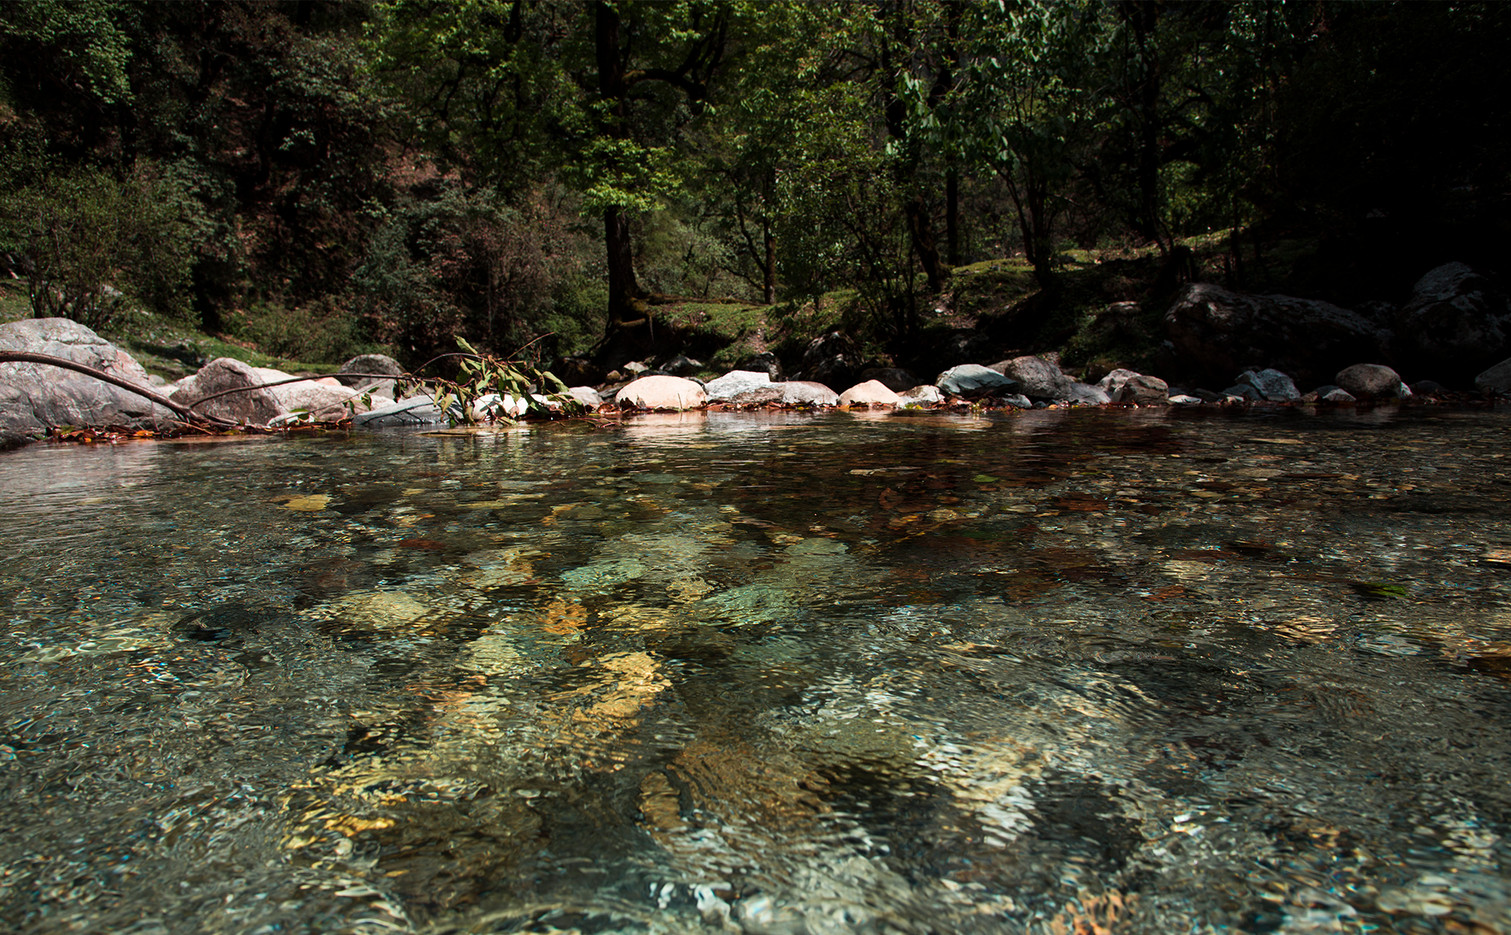 Waters of neel ganga.jpg